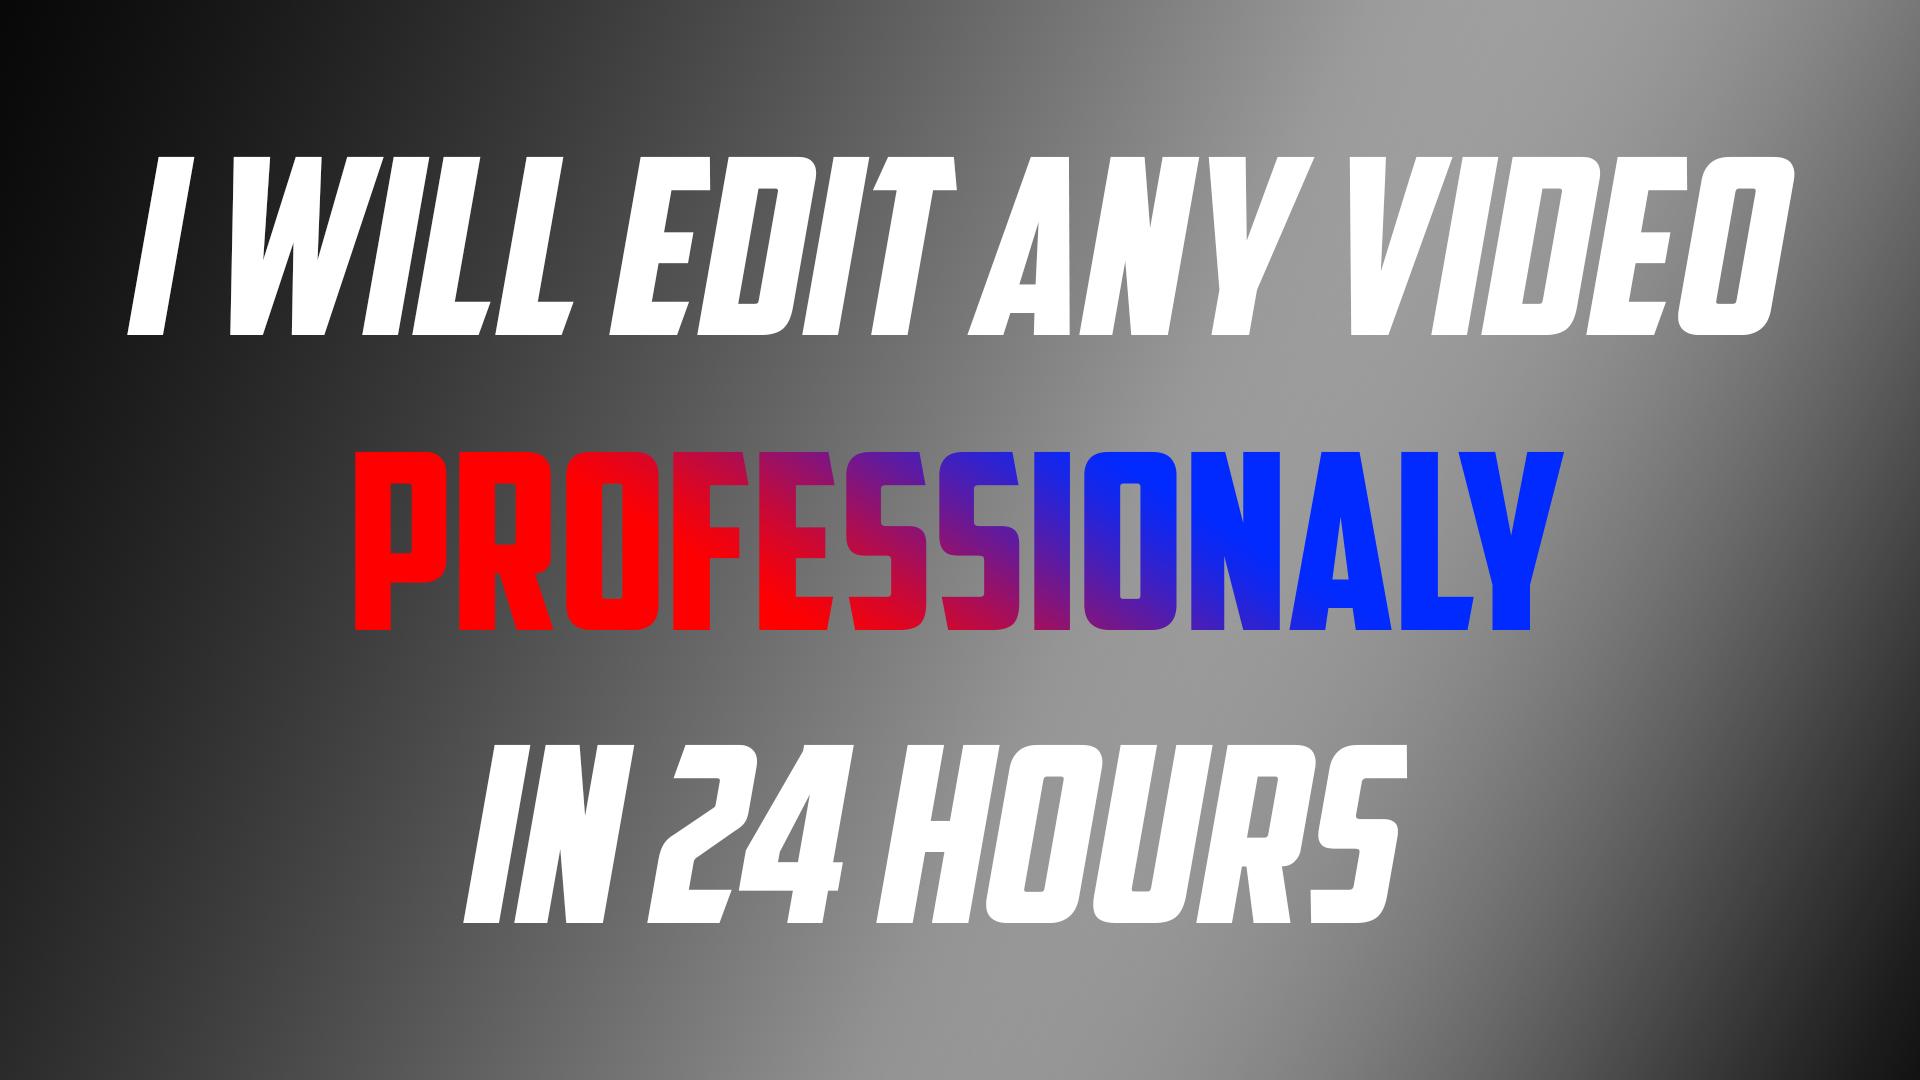 I can edit any video professionaly in 1080p